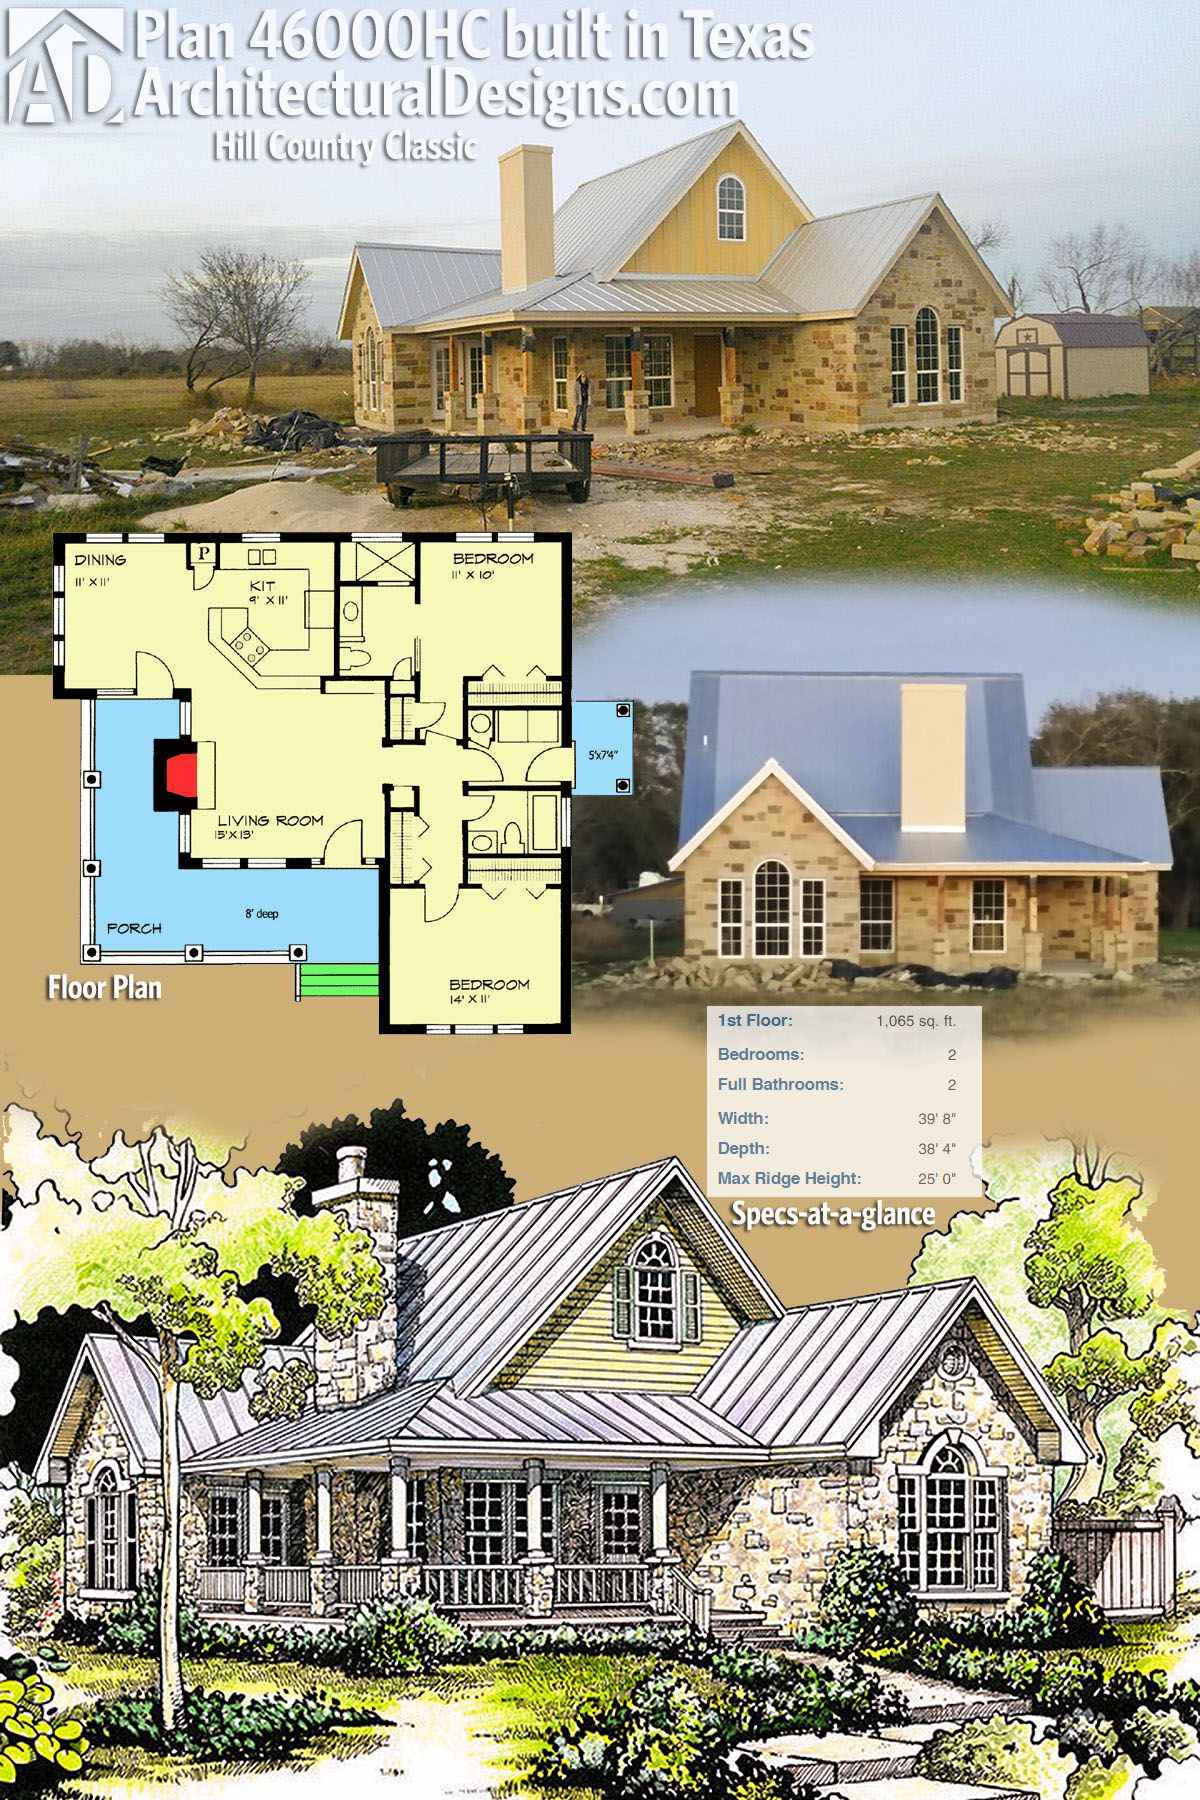 Architectural designs 2 bed hill country house plan 46000hc client built in texas is